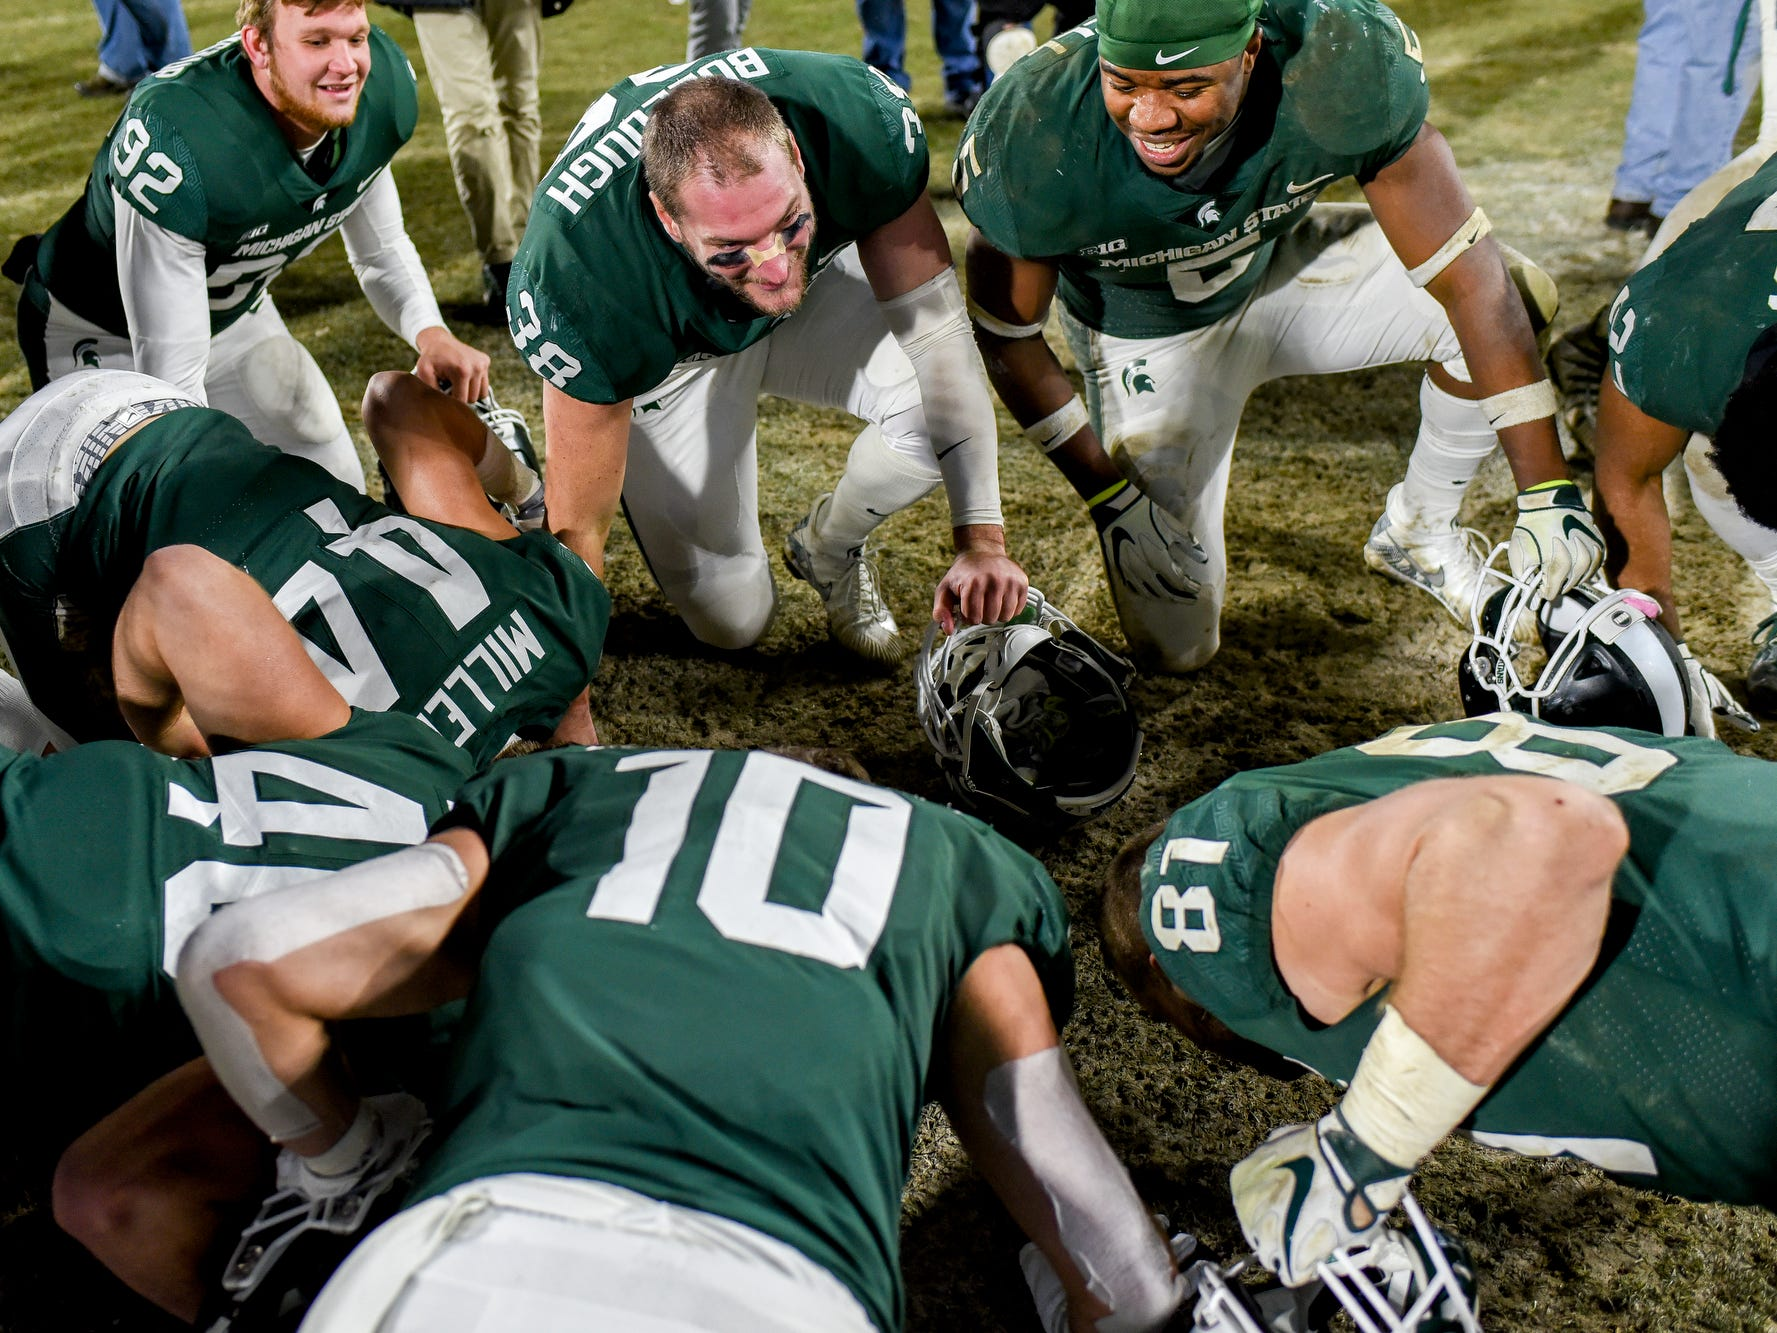 Michigan State senior all gather to kiss the Spartans helmet on the field after defeating Rutgers on Saturday, Nov. 24, 2018, at Spartan Stadium in East Lansing.